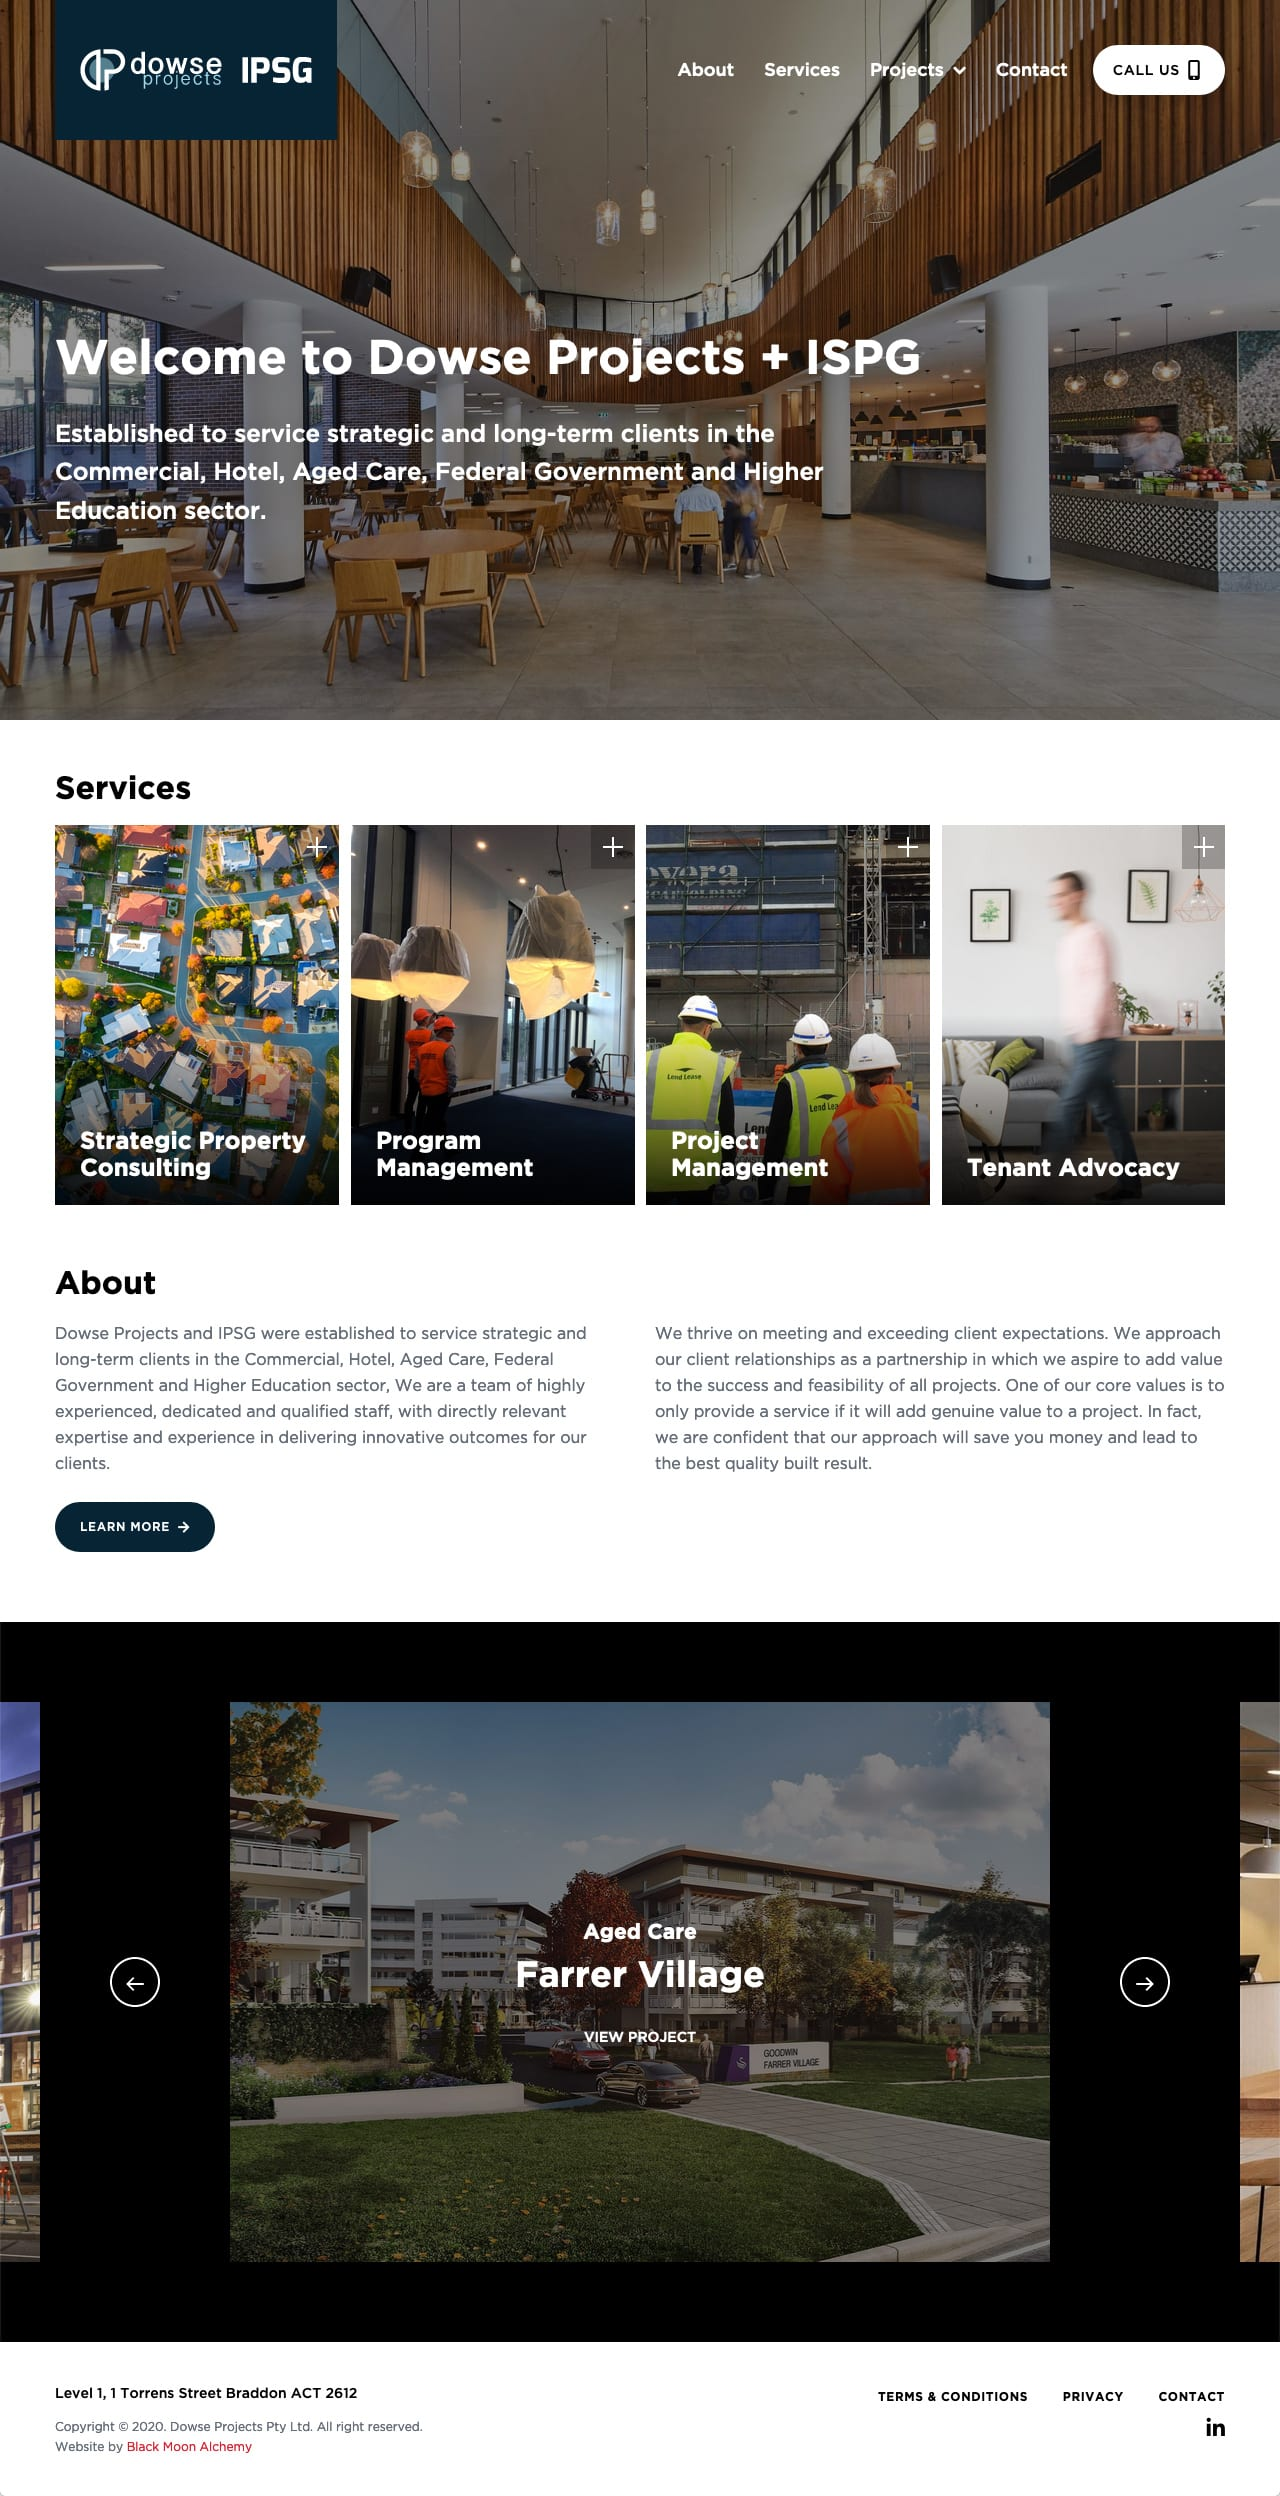 Dowse Projects + IPSG website